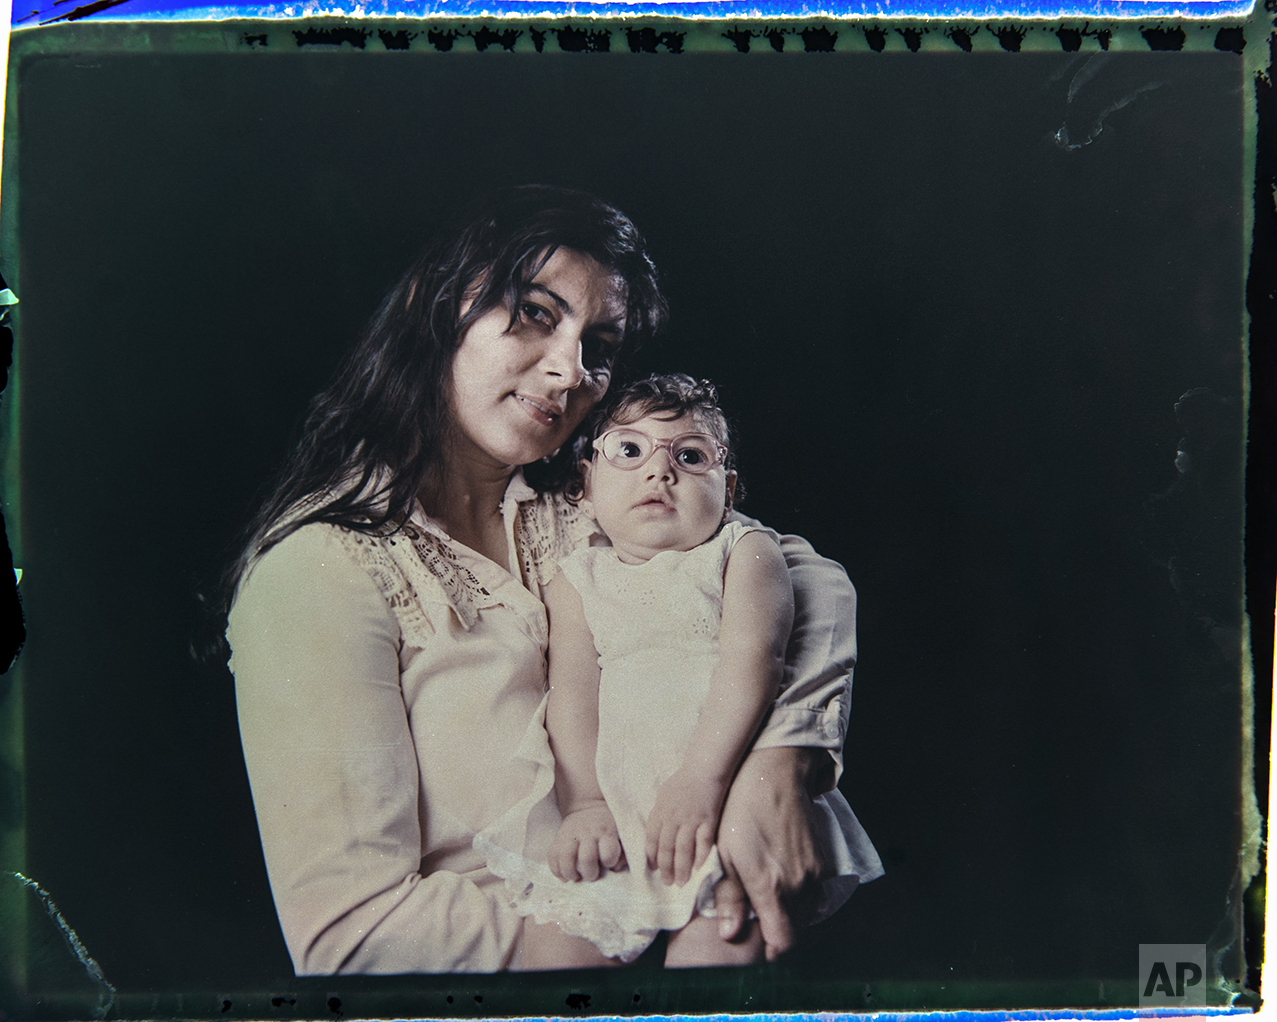 In this Sept. 29, 2016 photo made from a negative recovered from instant film, Jusikelly da Silva poses for a photo with her daughter Luhandra, who was born with microcephaly, one of many serious medical problems that can be caused by congenital Zika syndrome, in Recife, Pernambuco state, Brazil. Silva says she is desperate to get a brain scan for Luhandra, who was sitting up and eating solid foods before a seizure several months ago left her virtually motionless. (AP Photo/Felipe Dana)